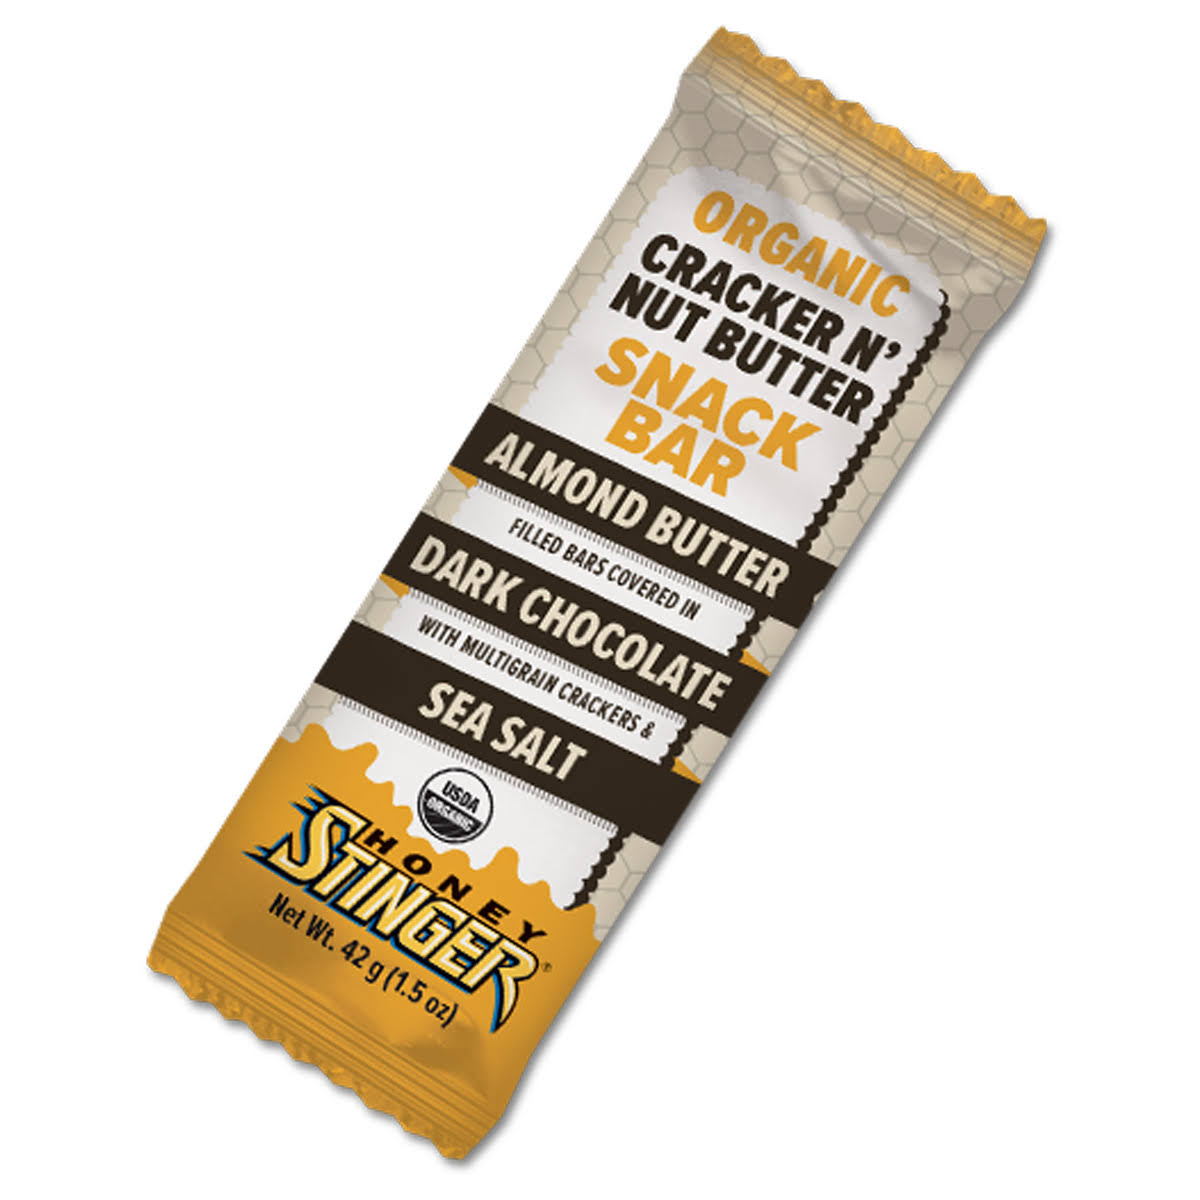 Honey Stinger Cracker N' Nut Butter, Organic, Snack Bar - 1.5 oz